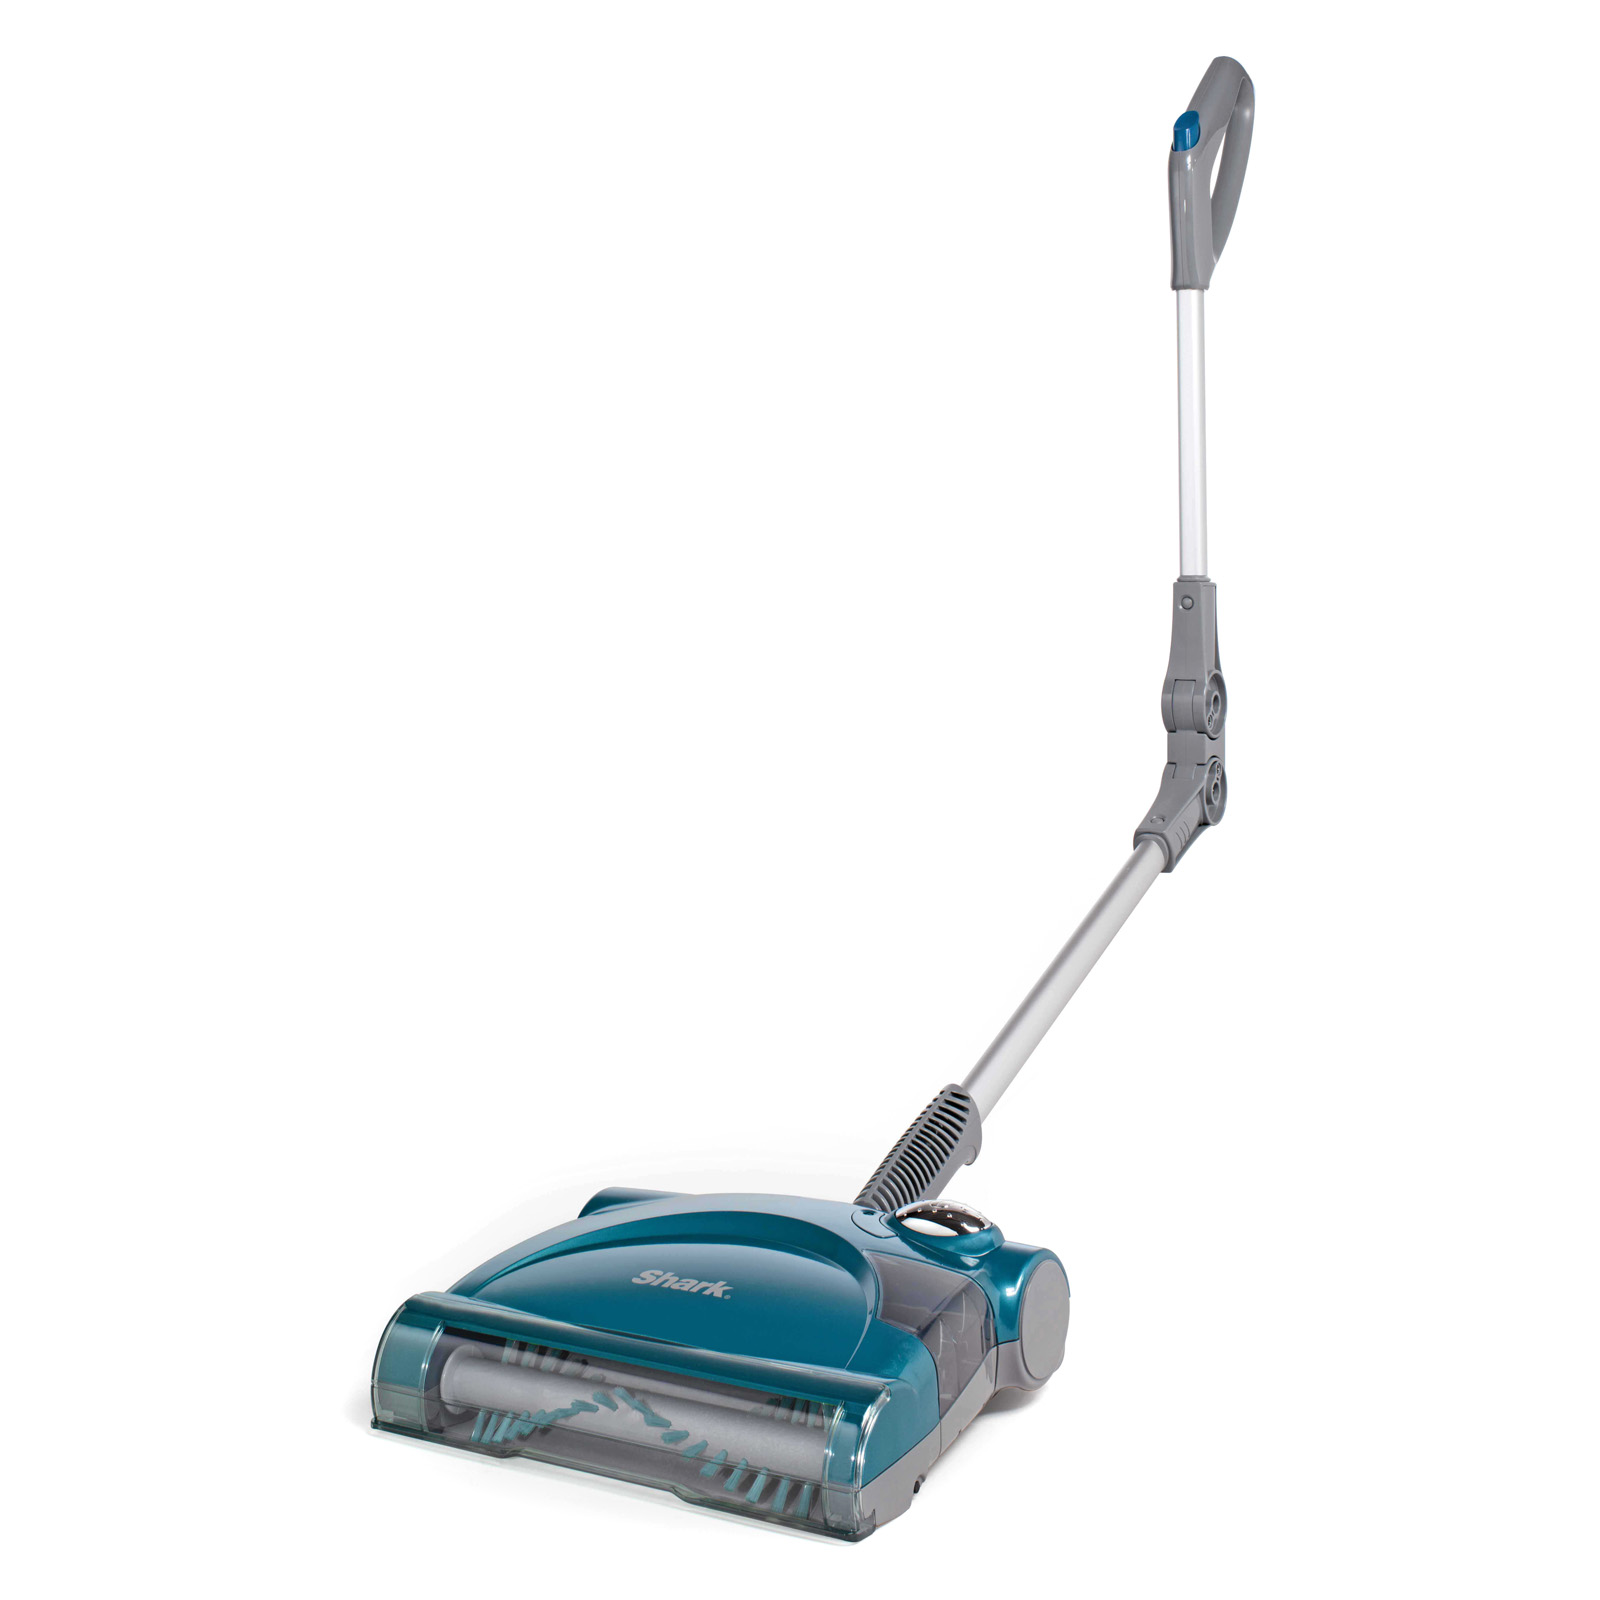 shark cordless floor and carpet cleaner stick vacuum v1930